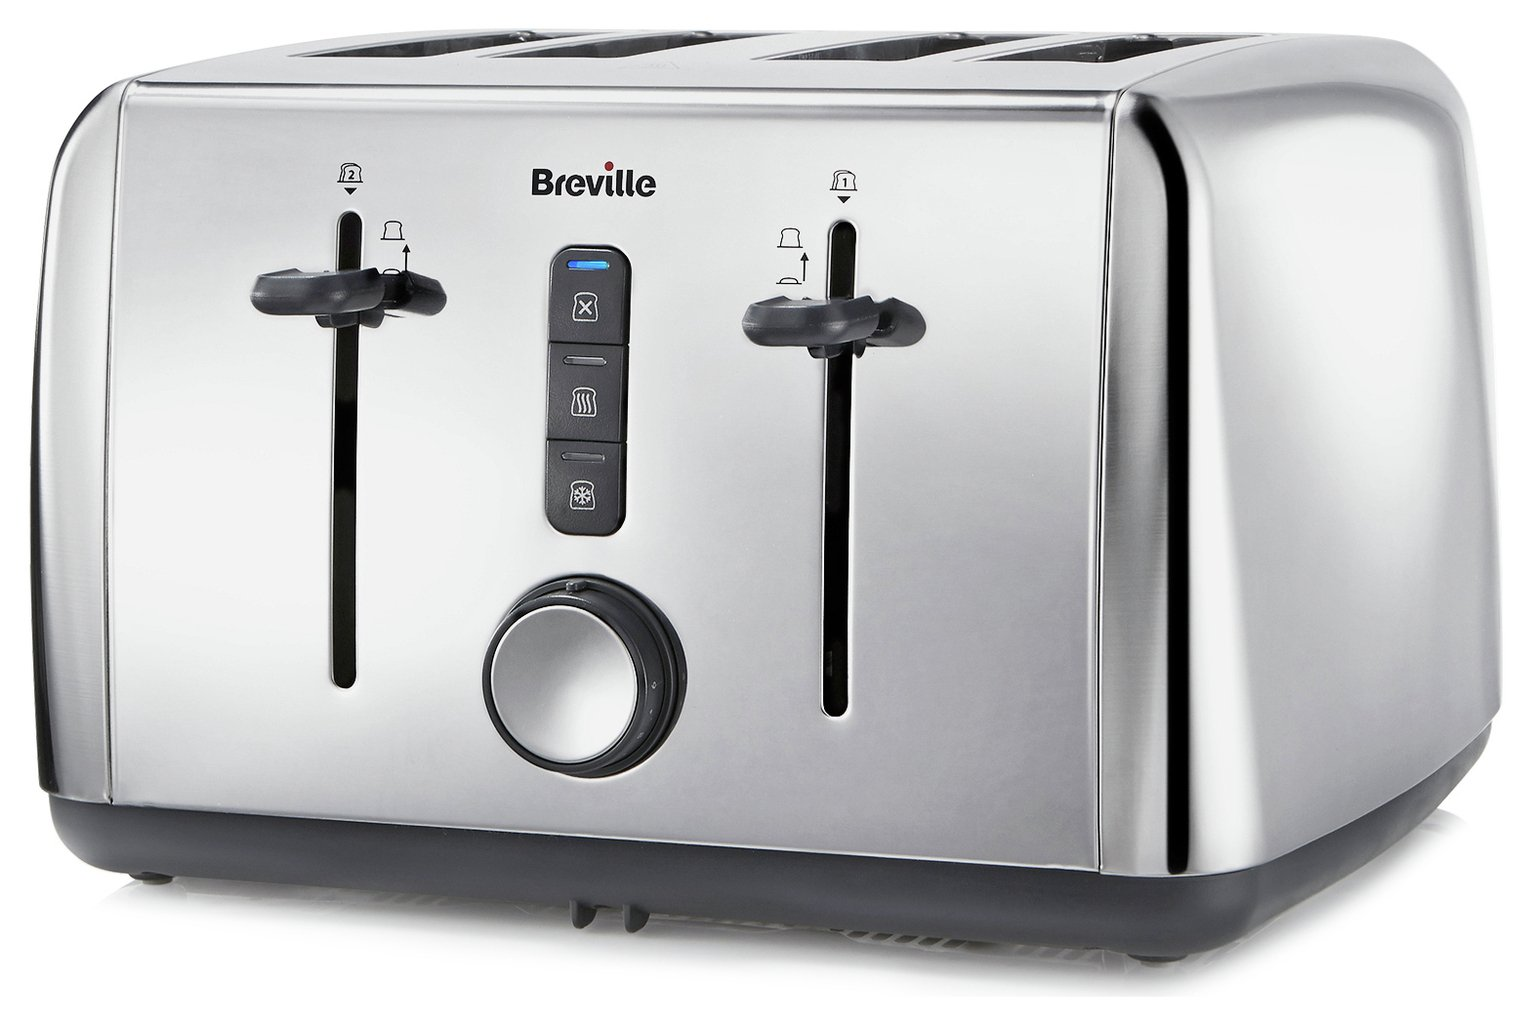 Breville - 4 Slice Toaster - Stainless Steel